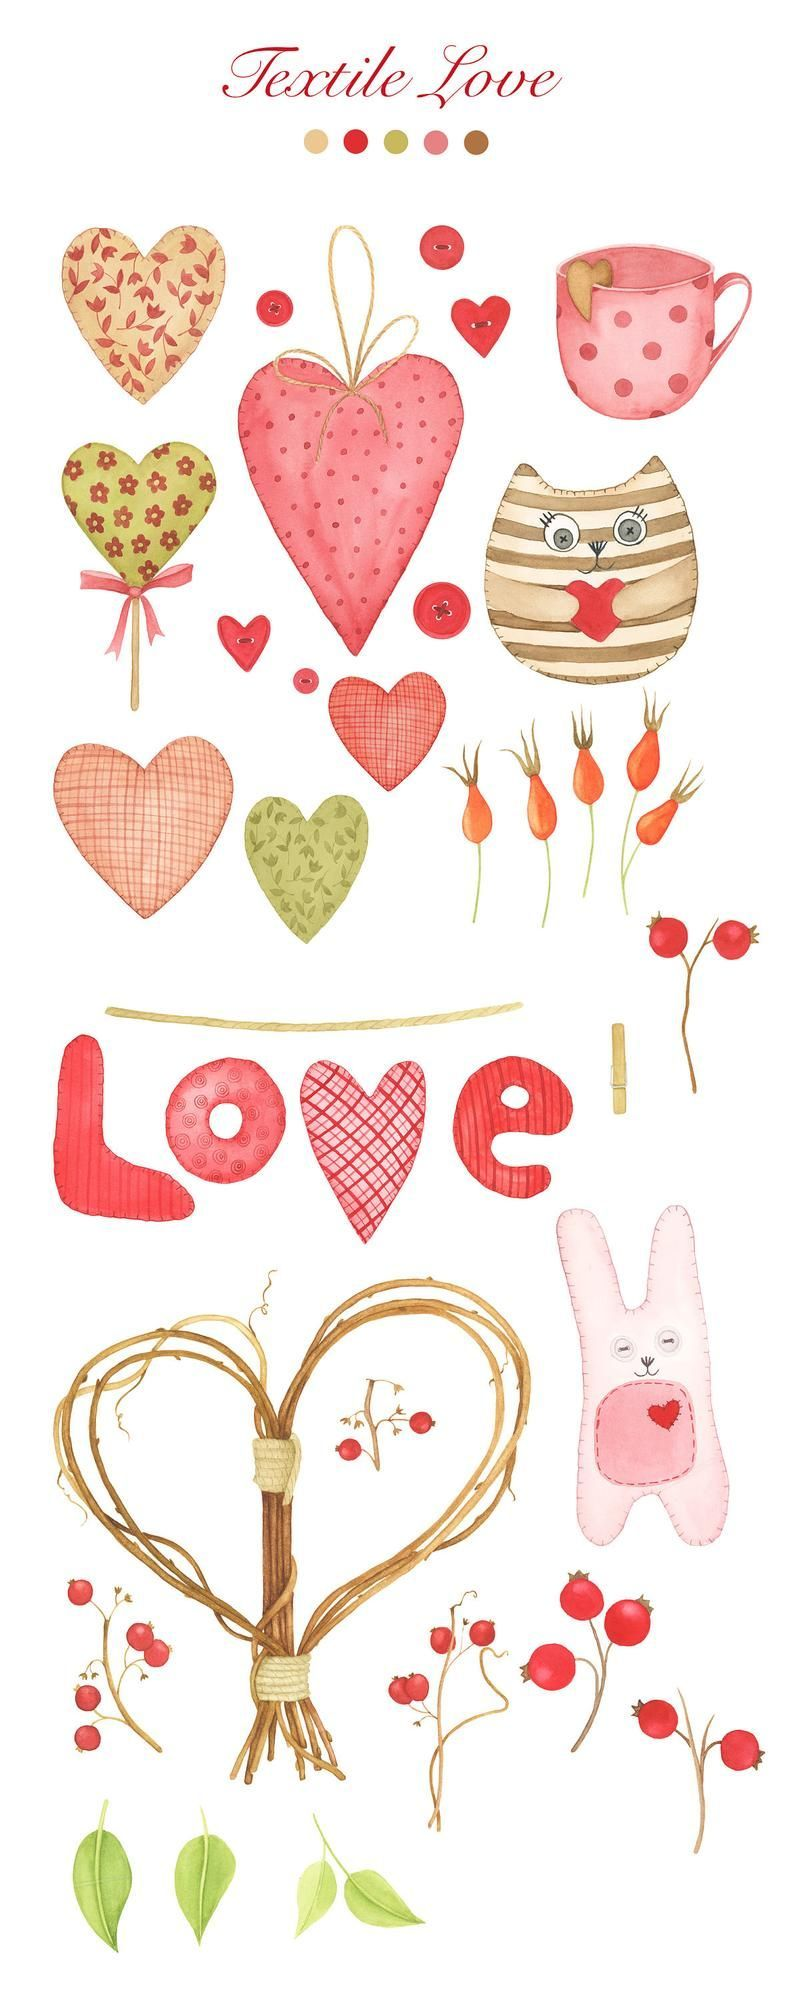 Valentine S Day Clip Art Watercolor Heart Wreath Clipart Floral Wreath Clip Art Country Style Wreath And Wreath Illustration Wreath Clip Art Valentines Art